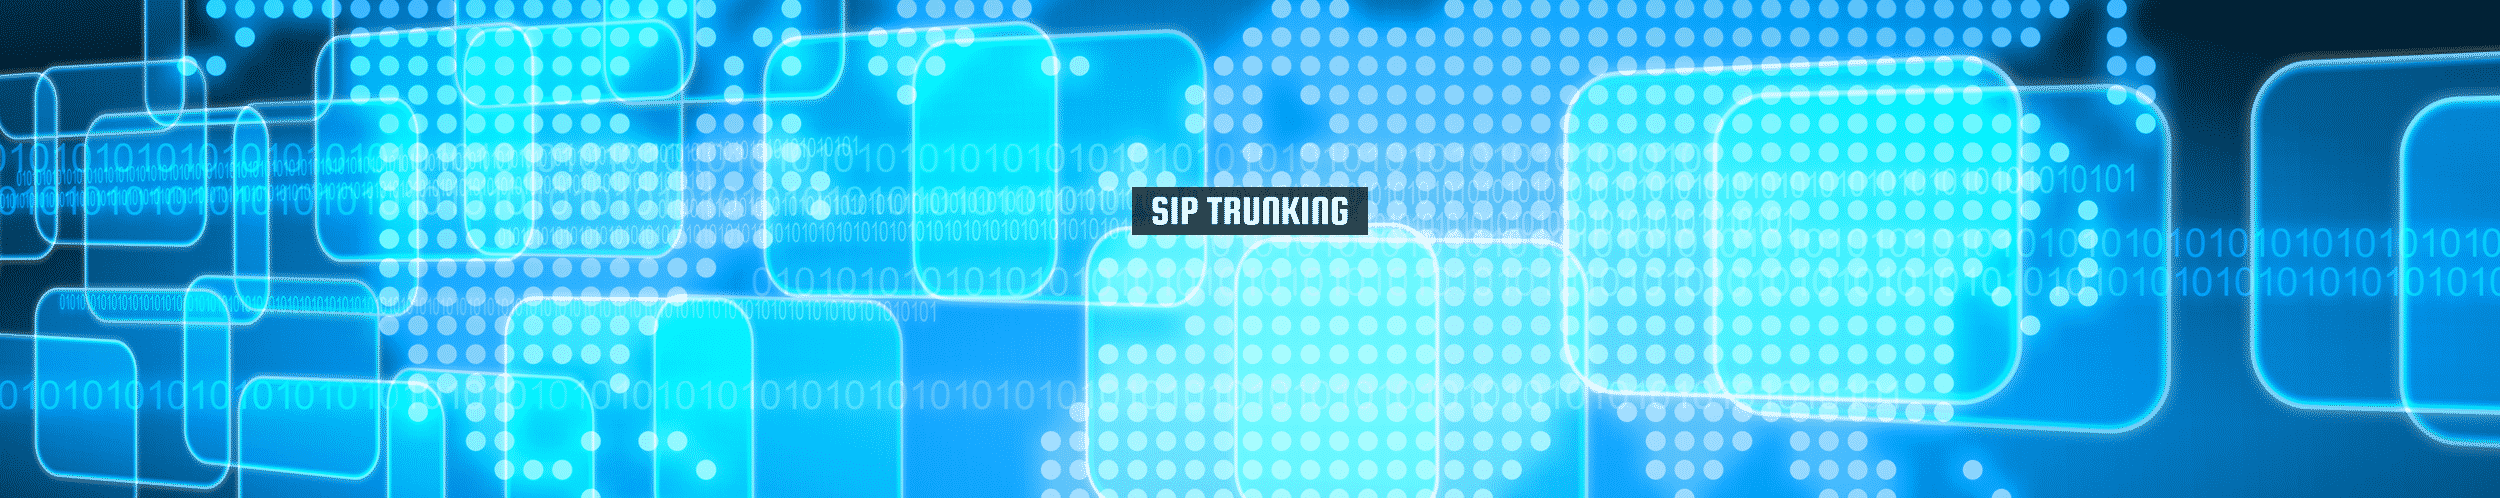 52Degrees SIP Trunking - feature image | blue tech like background with coding | Telecoms Solutions, Norwich